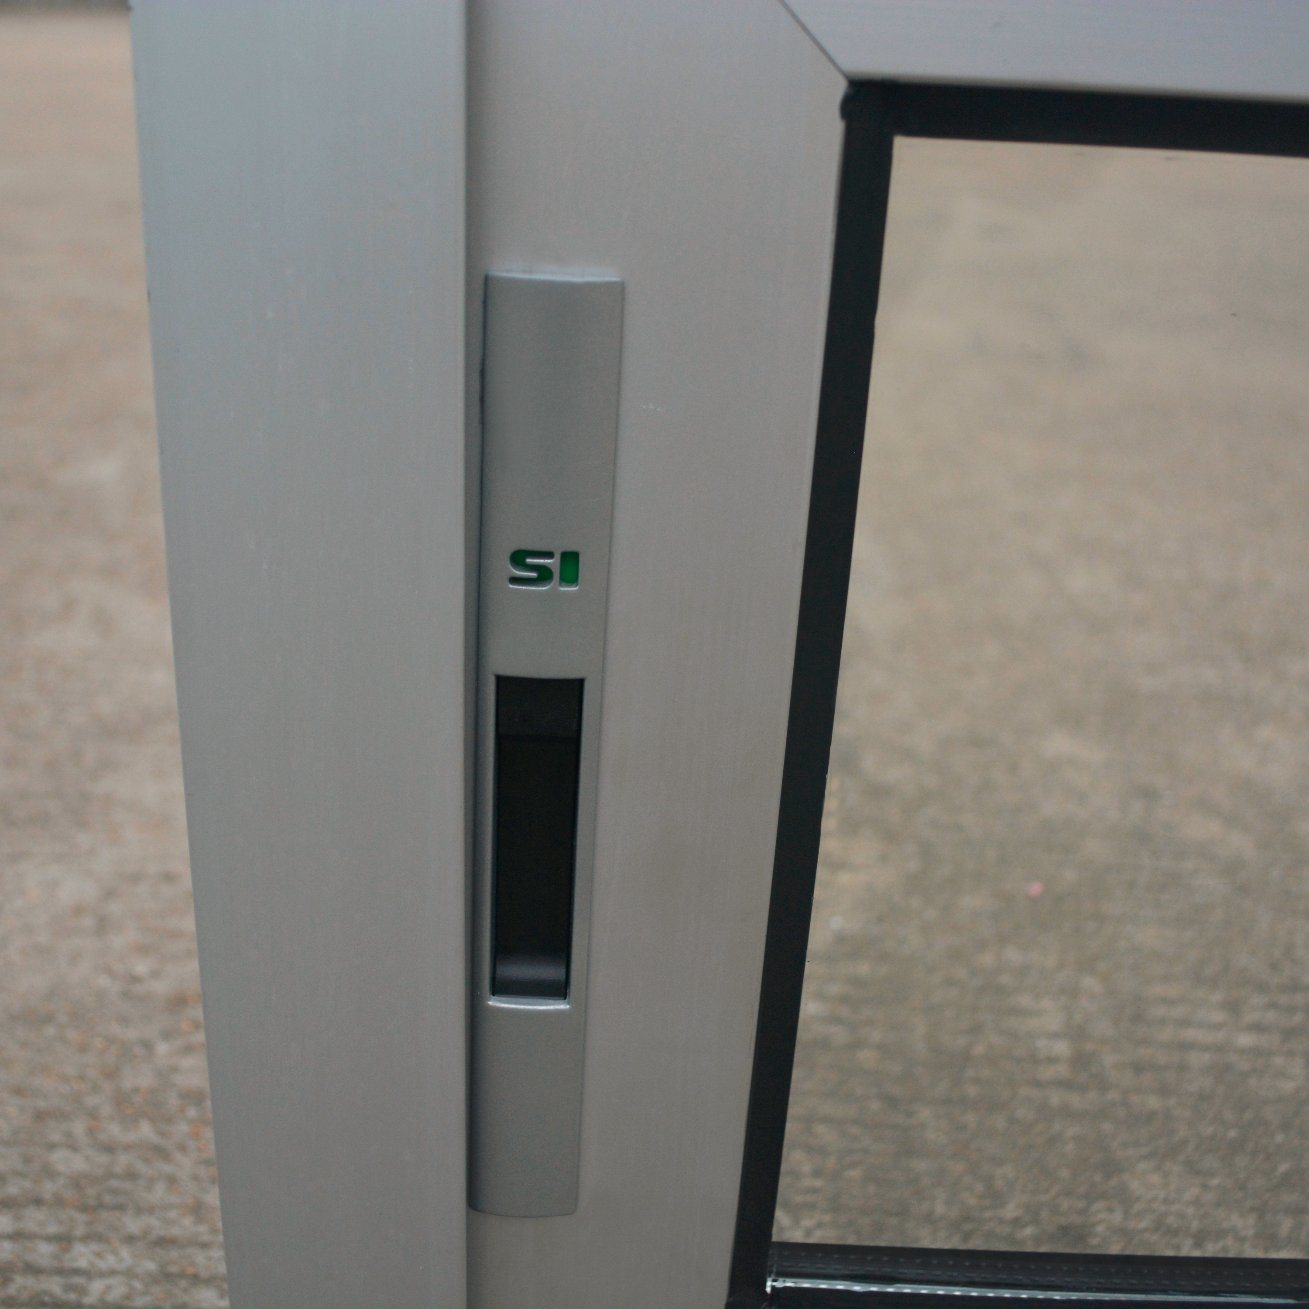 Powder Coated Thermal Break Aluminum Alloy Window with Latch Lock, Aluminum Sliding Window K01010